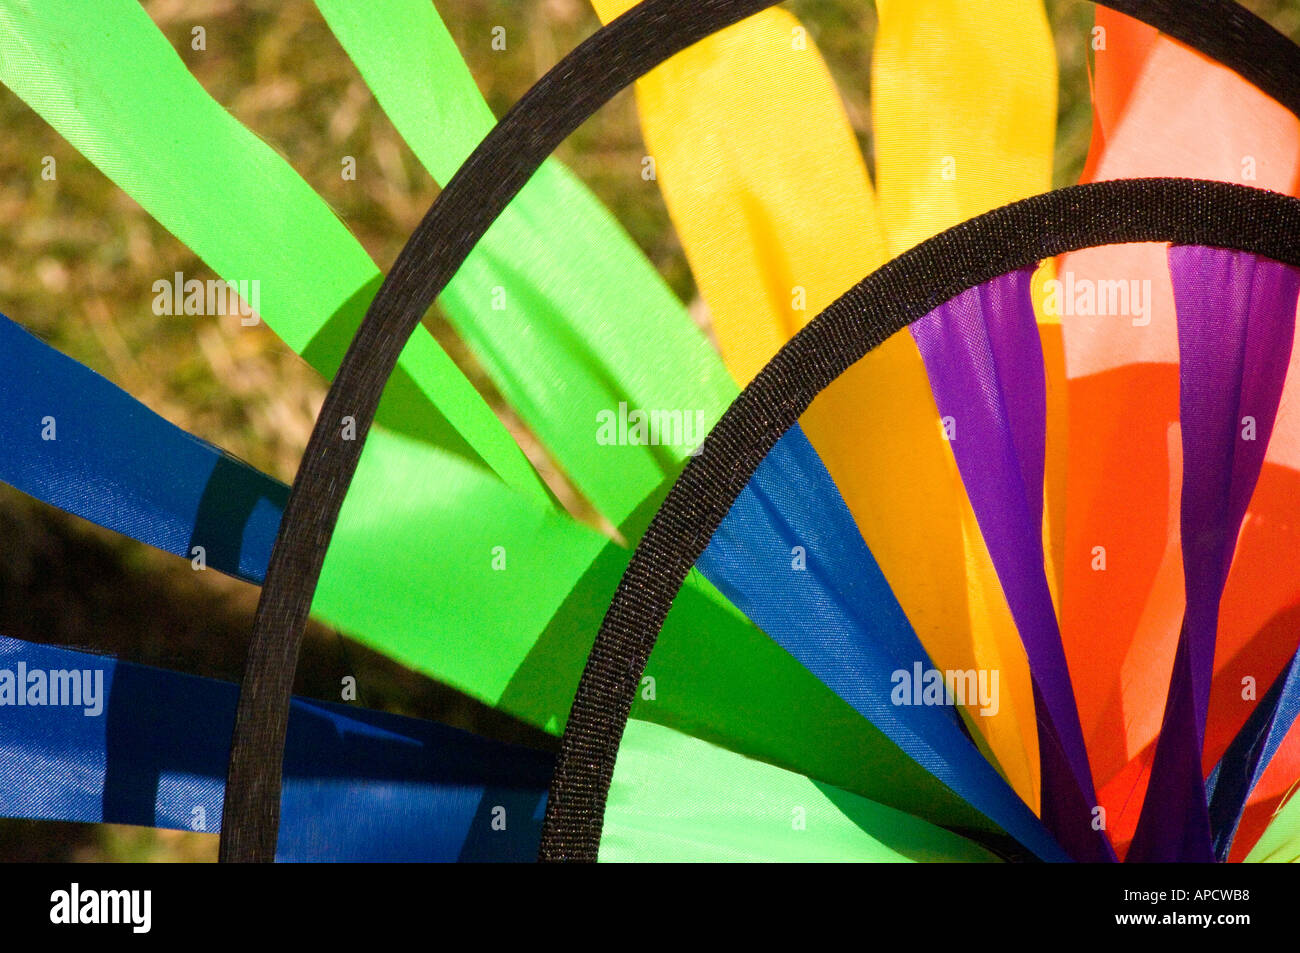 Colourful windmill garden ornament in the summer sunshine - close-up shot Stock Photo